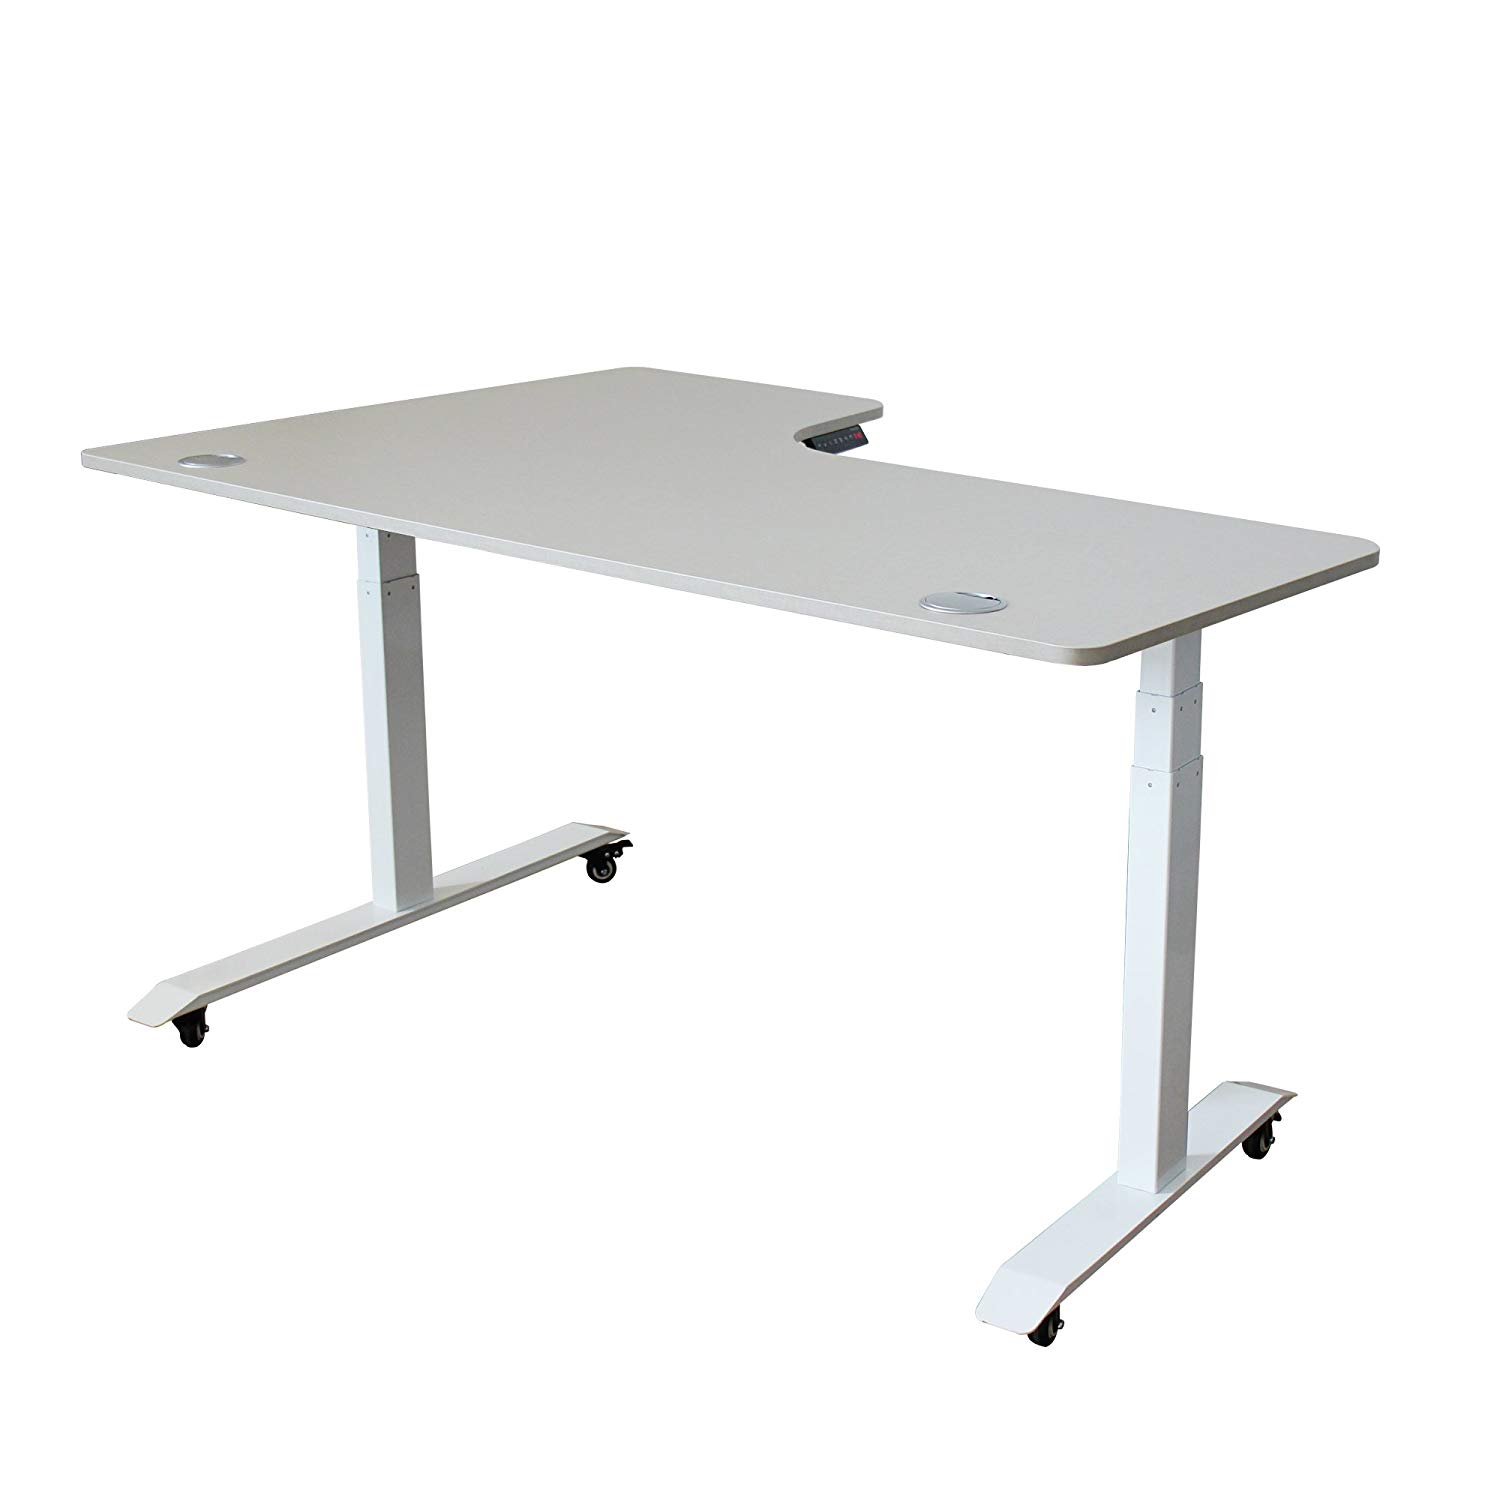 Azure Sky A3-63L Ergonomic 63-in 3 Memory Buttons LED Electric Automatic Height Adjustable Sit to Stand L-Shaped Corner Work Office Desk with Black Legs